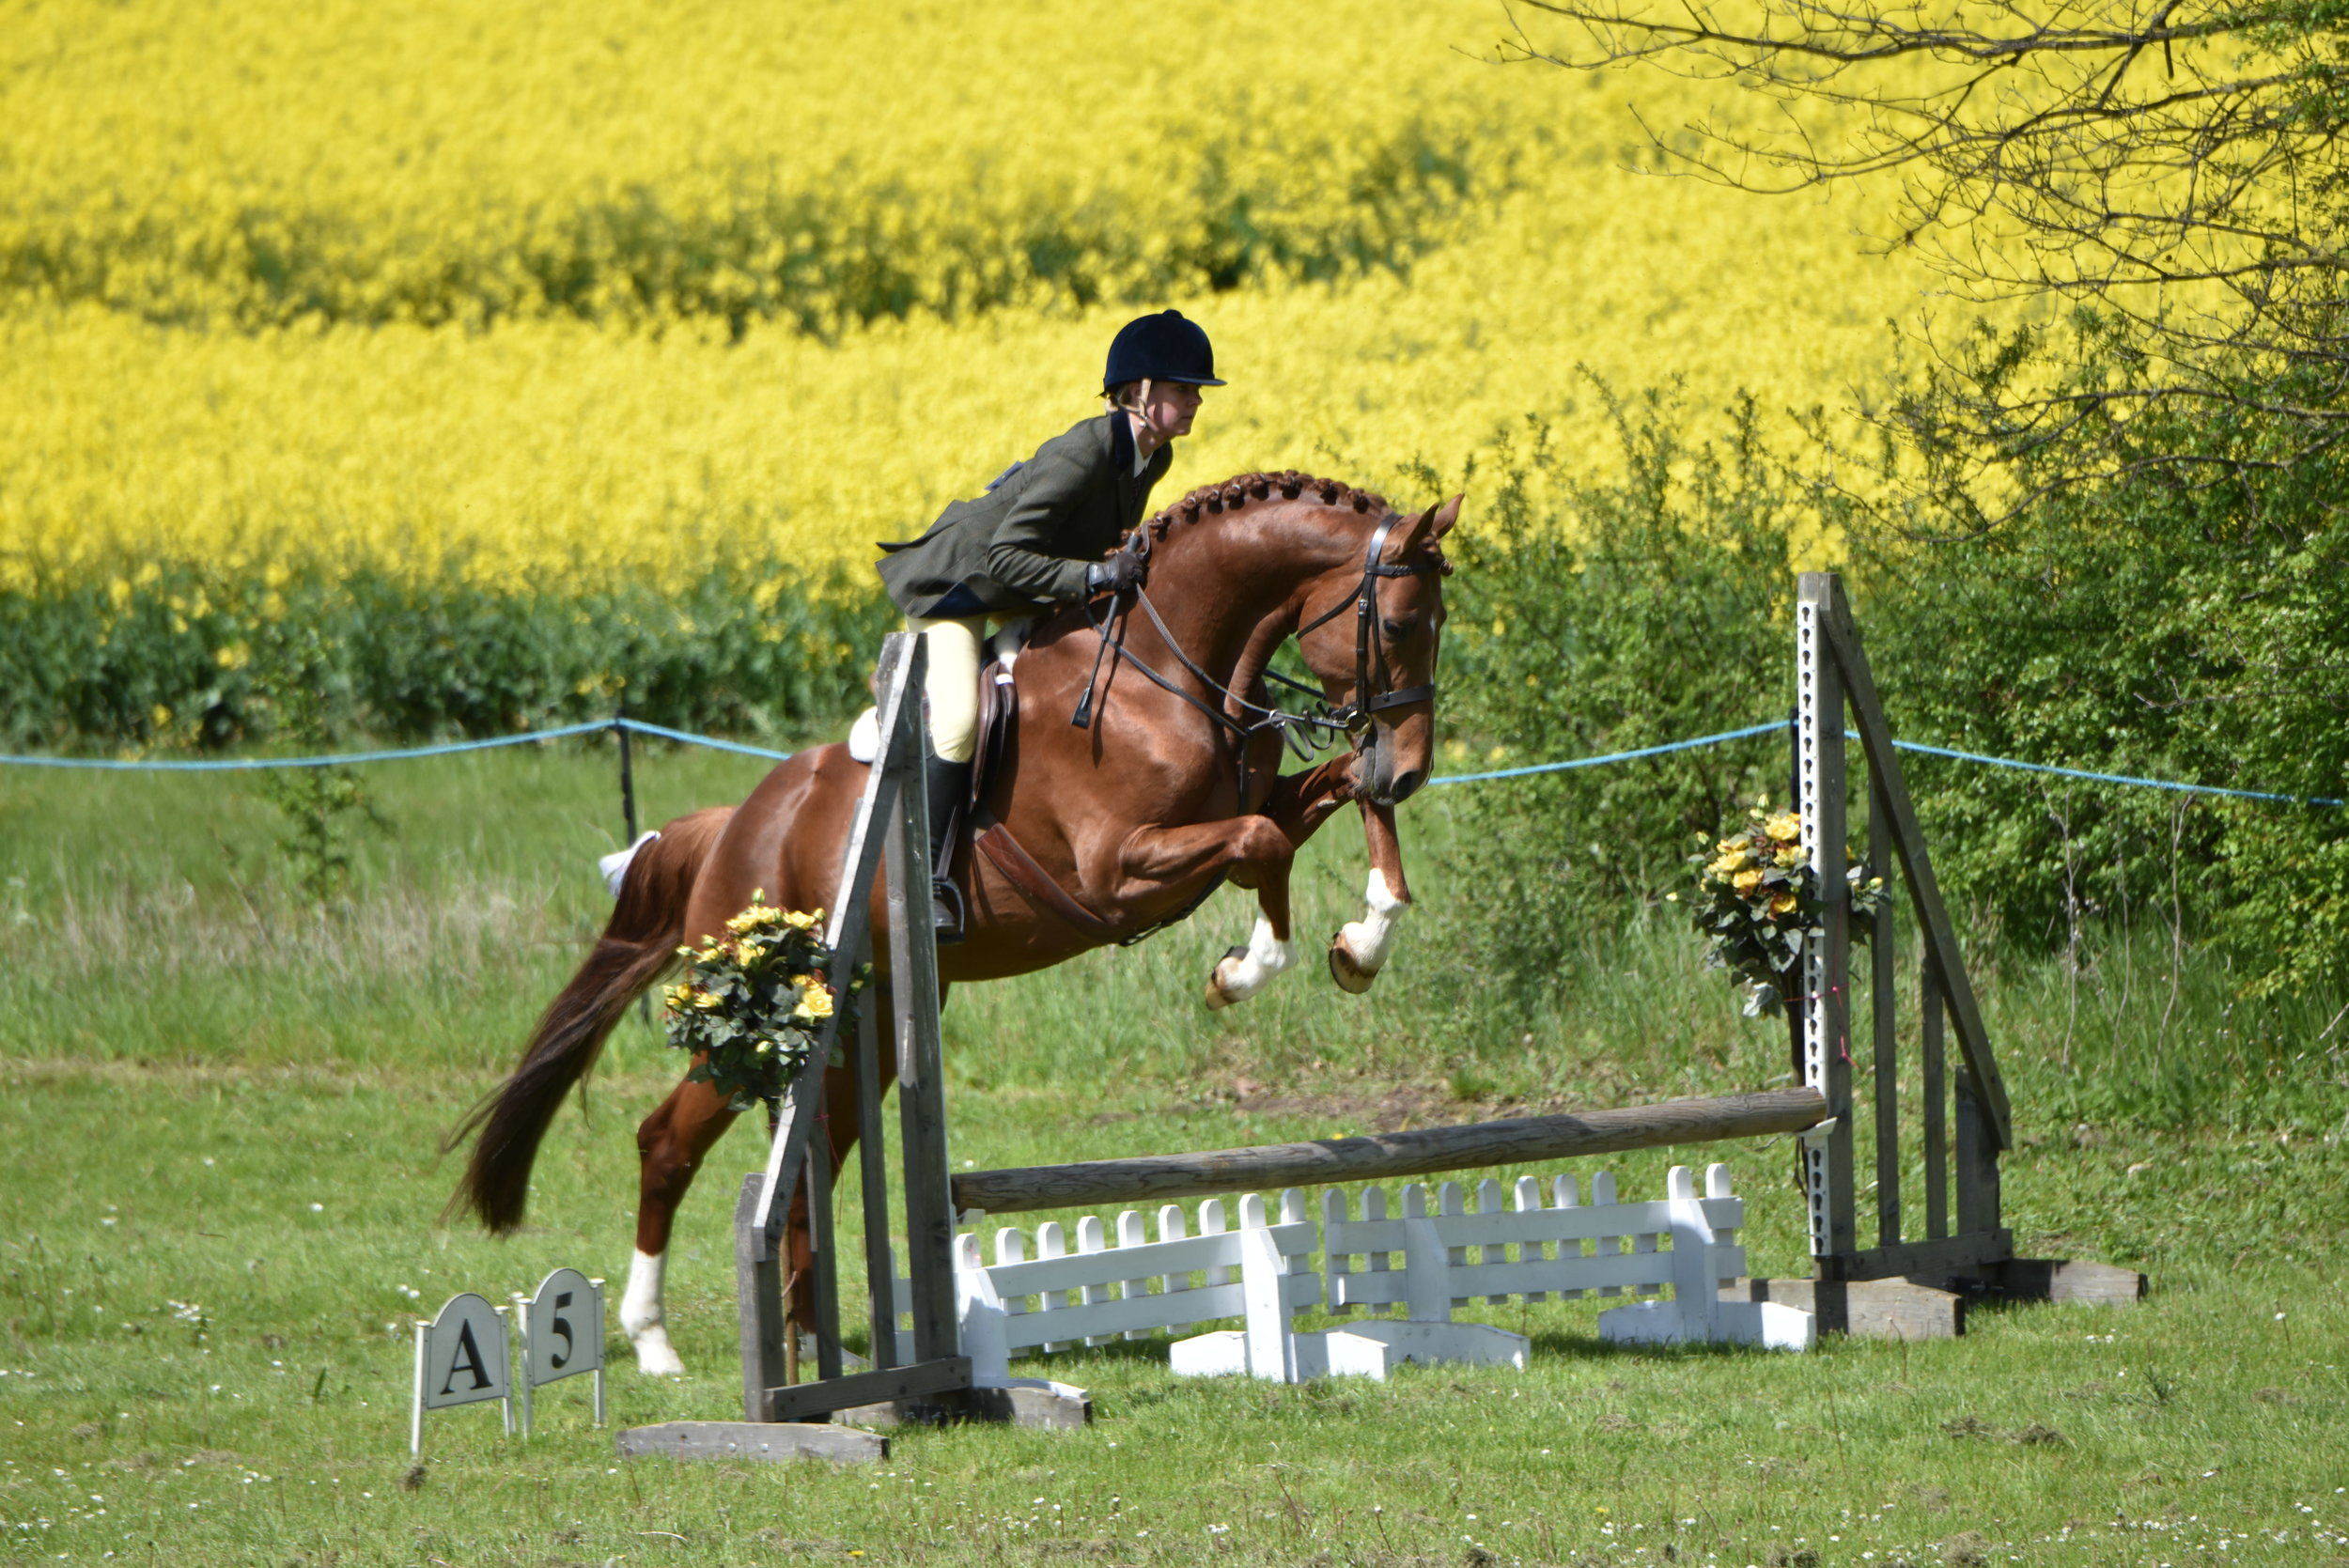 There was also plenty of healthy competition on offer for those more experienced, with many returning champions and those fresh from major national shows challenging each other for the top prizes.